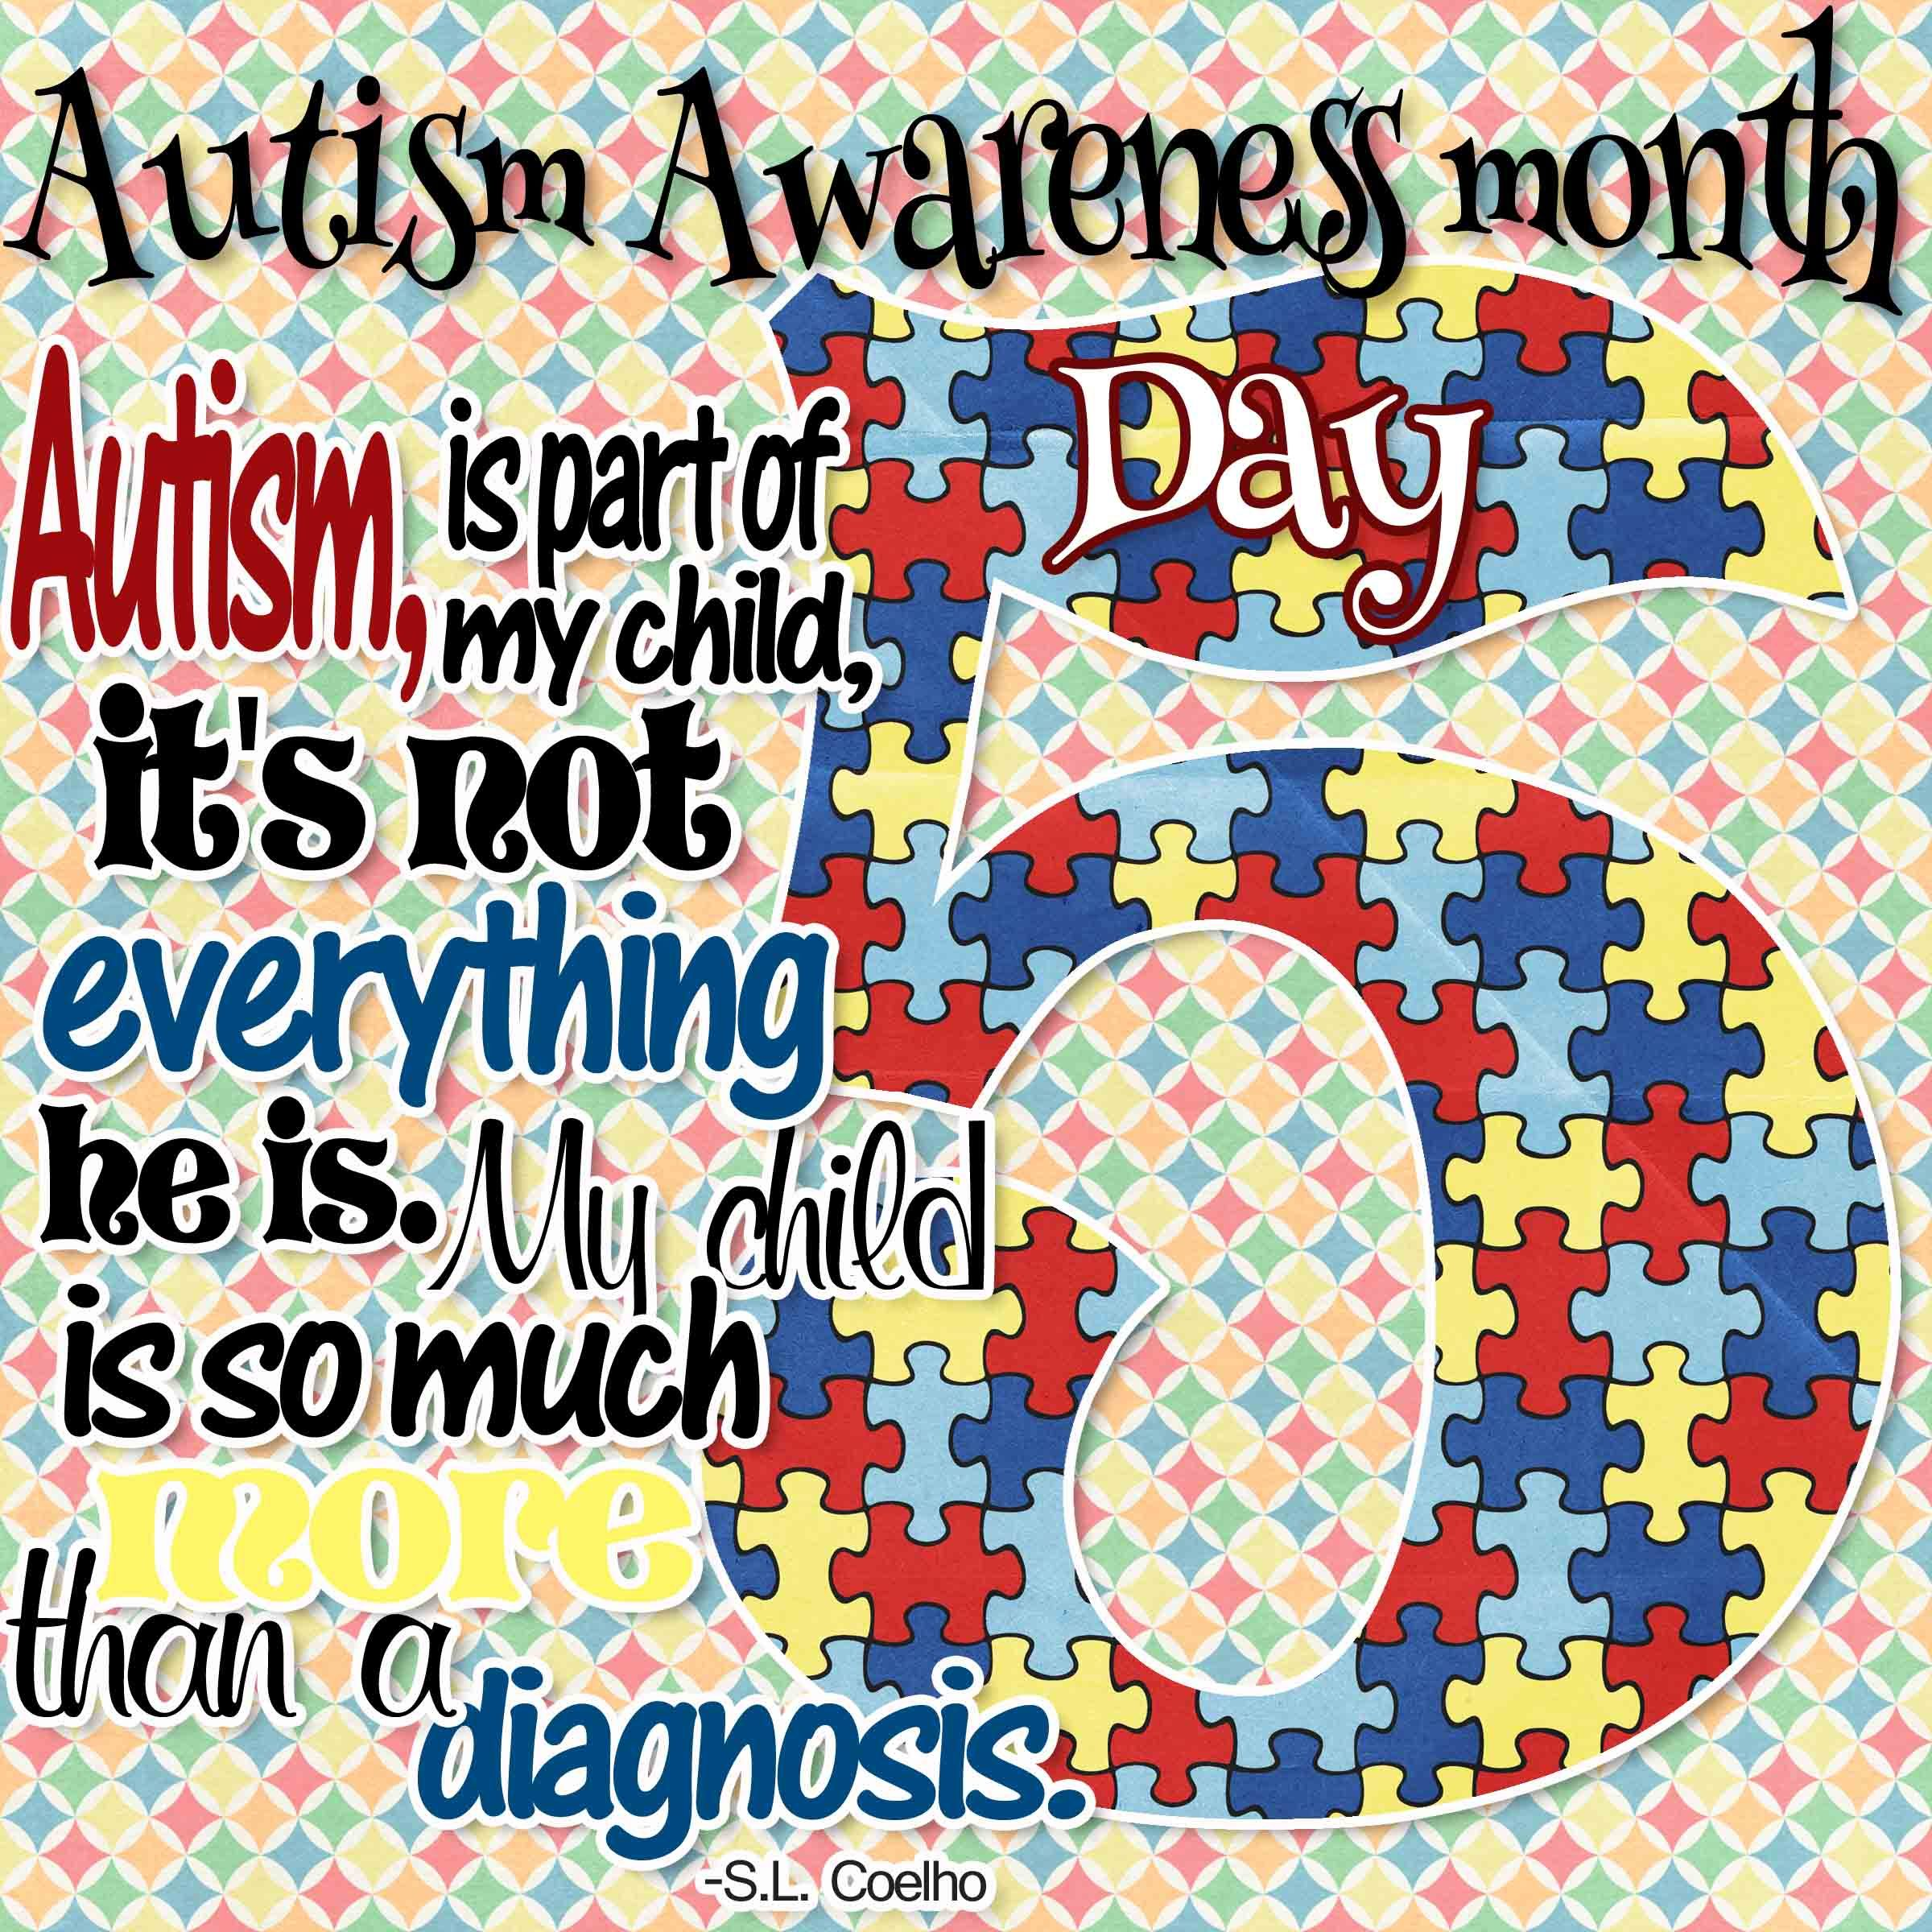 Pin by MDD Designs on Team Autism Pinterest